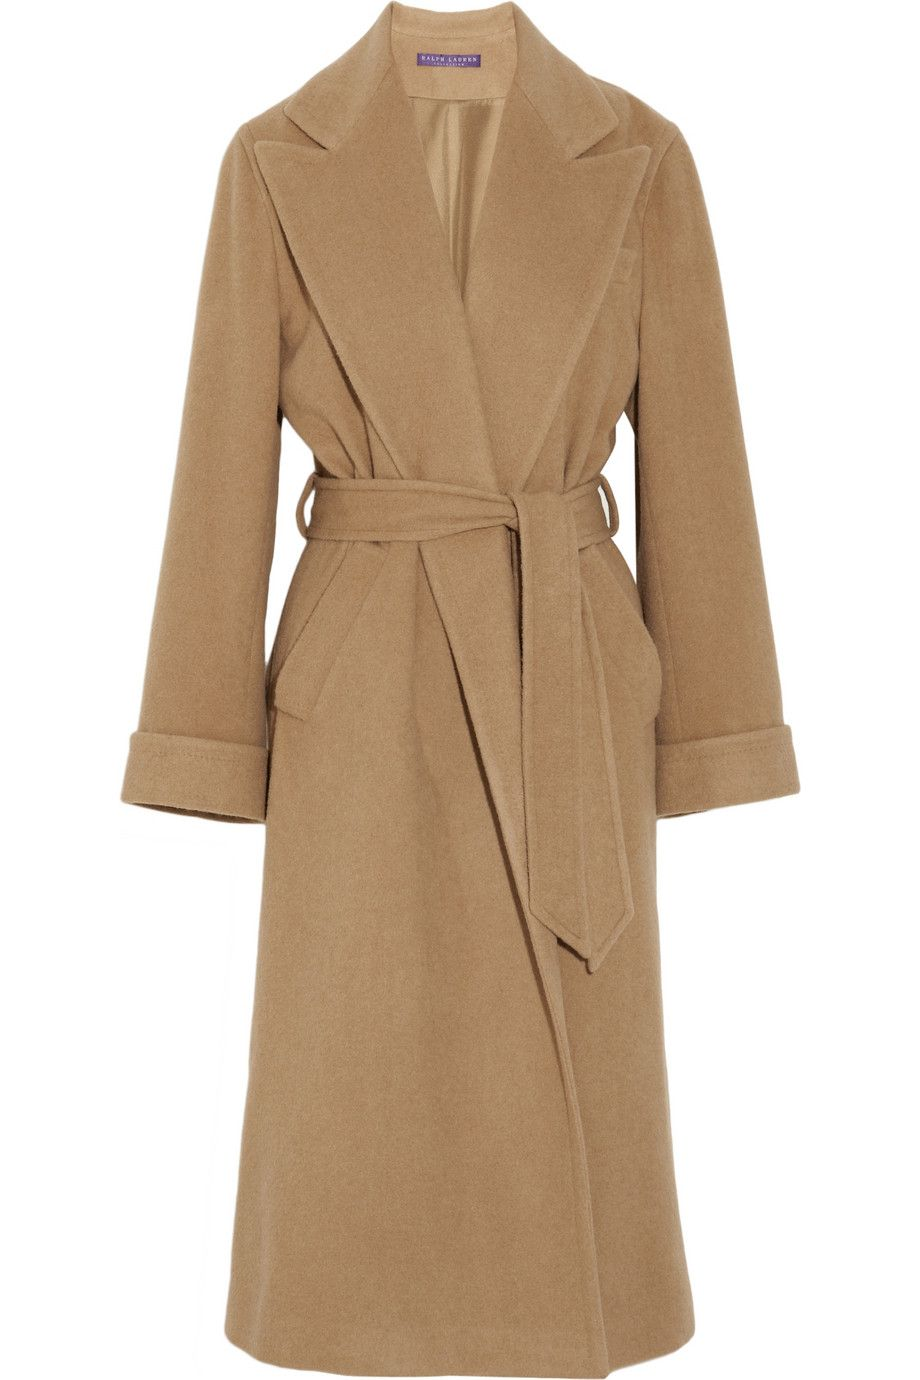 Ralph Lauren Collection The Perfect Camel Hair Coat Just What I Need Another Long Love Them